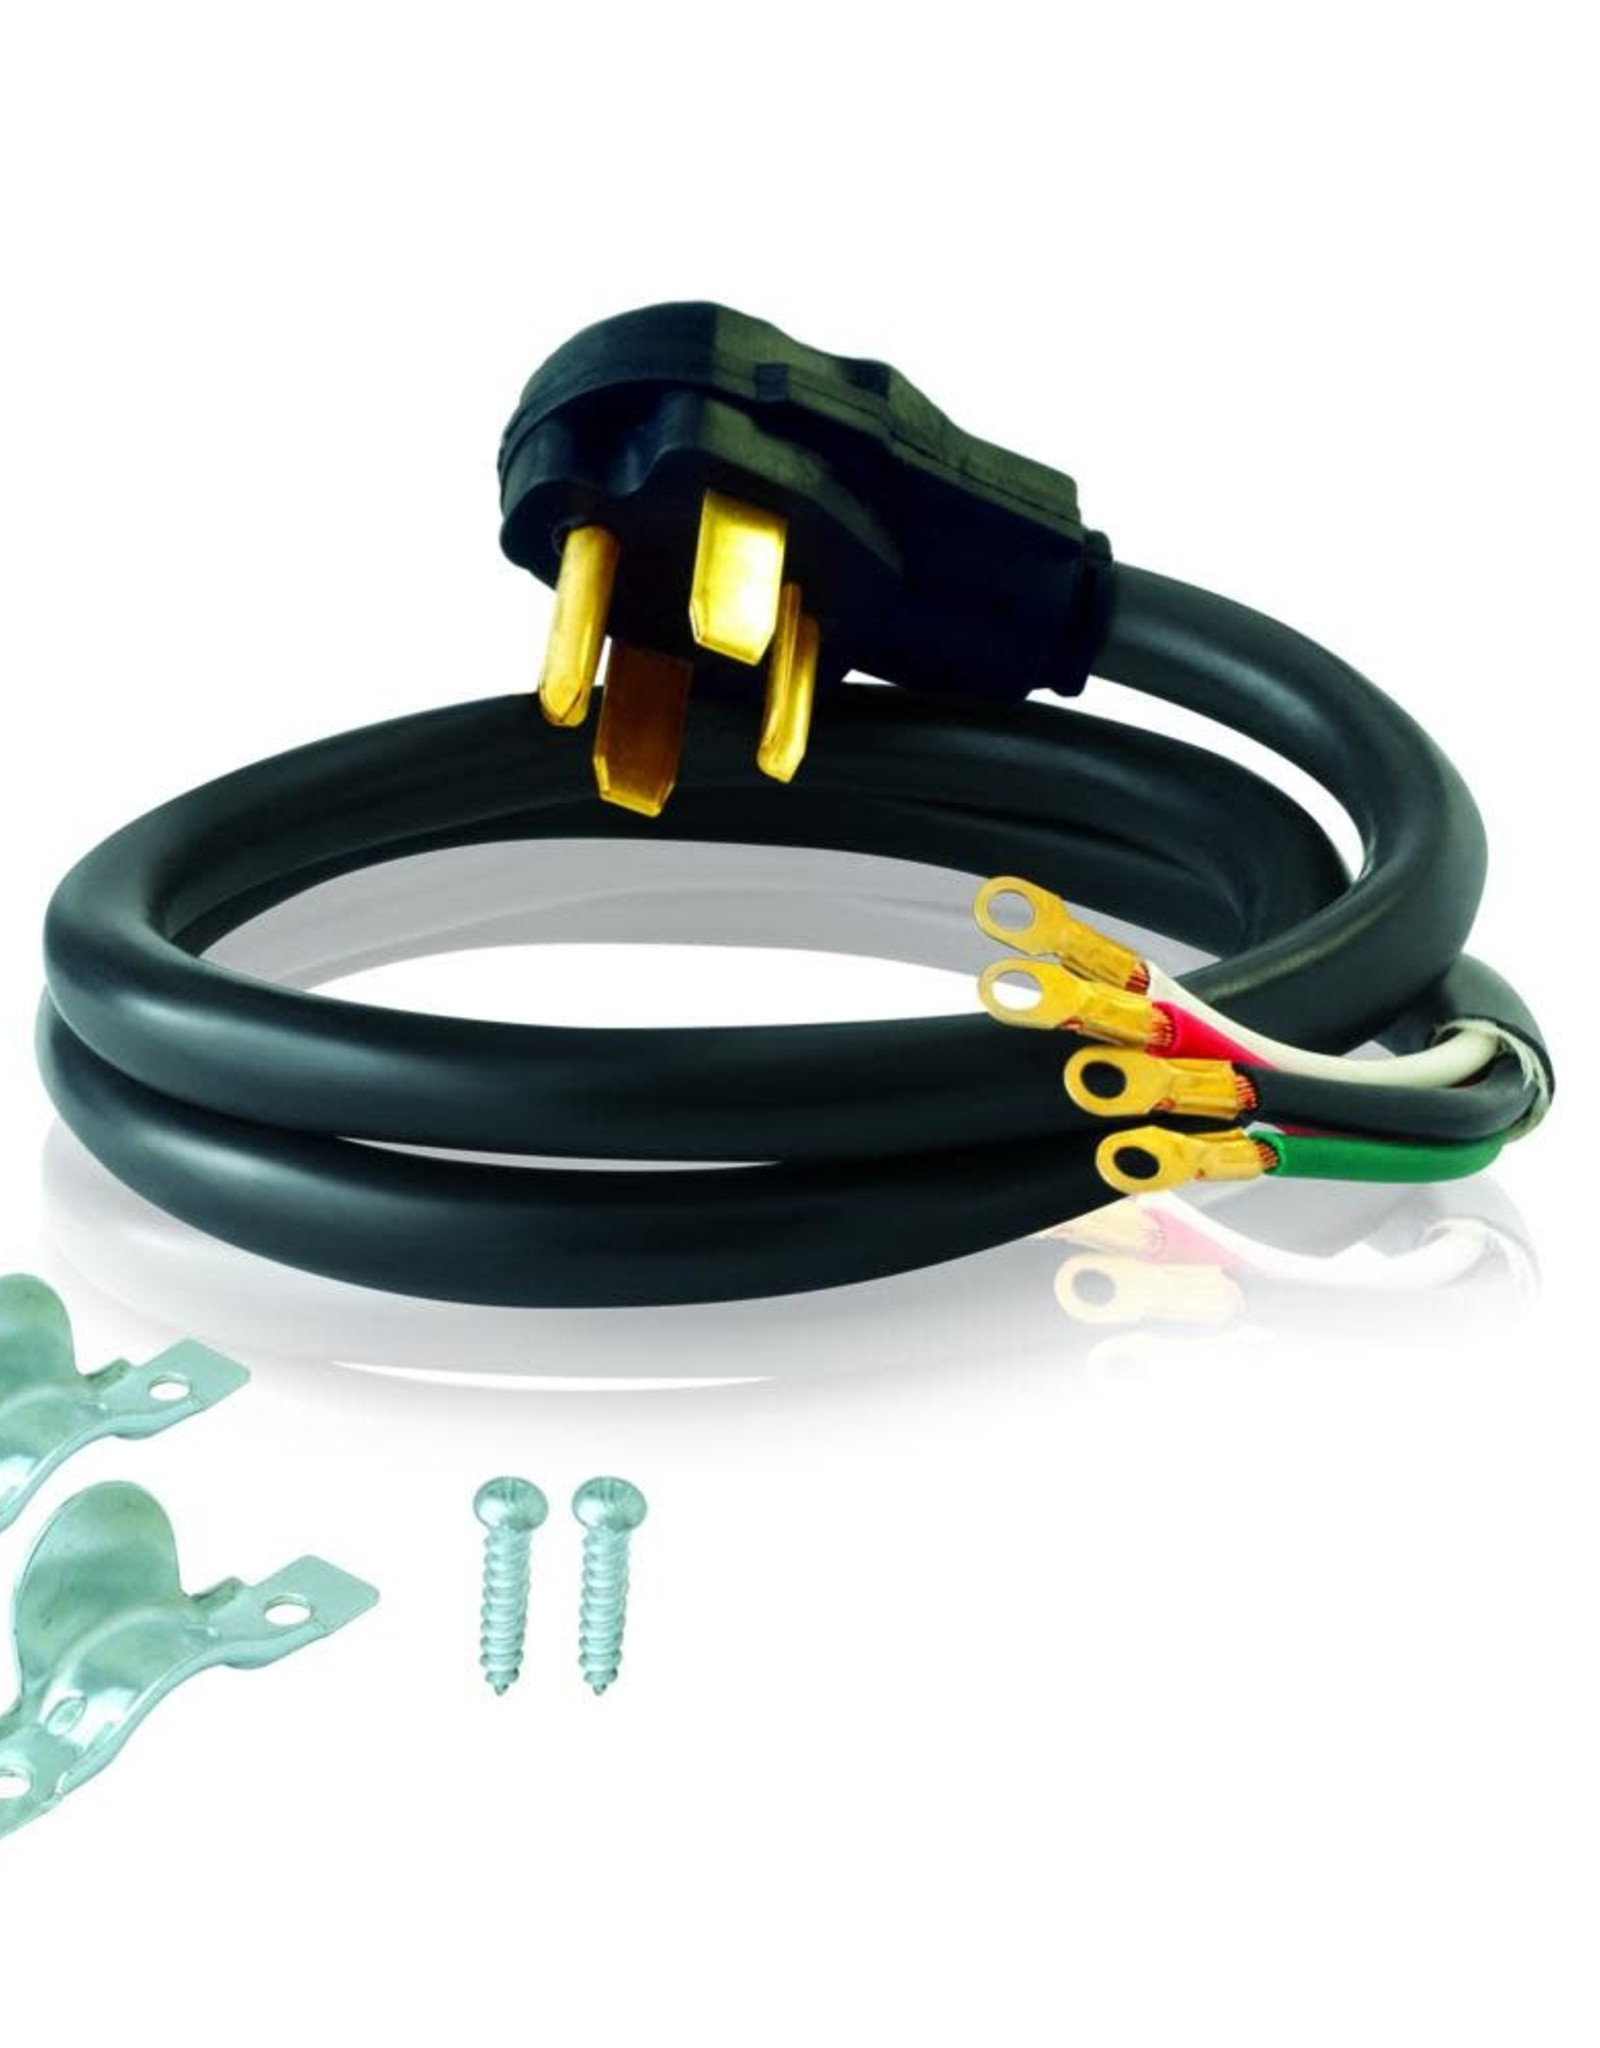 Eastman 10 ft. 10/4 4-Wire Dryer Cord